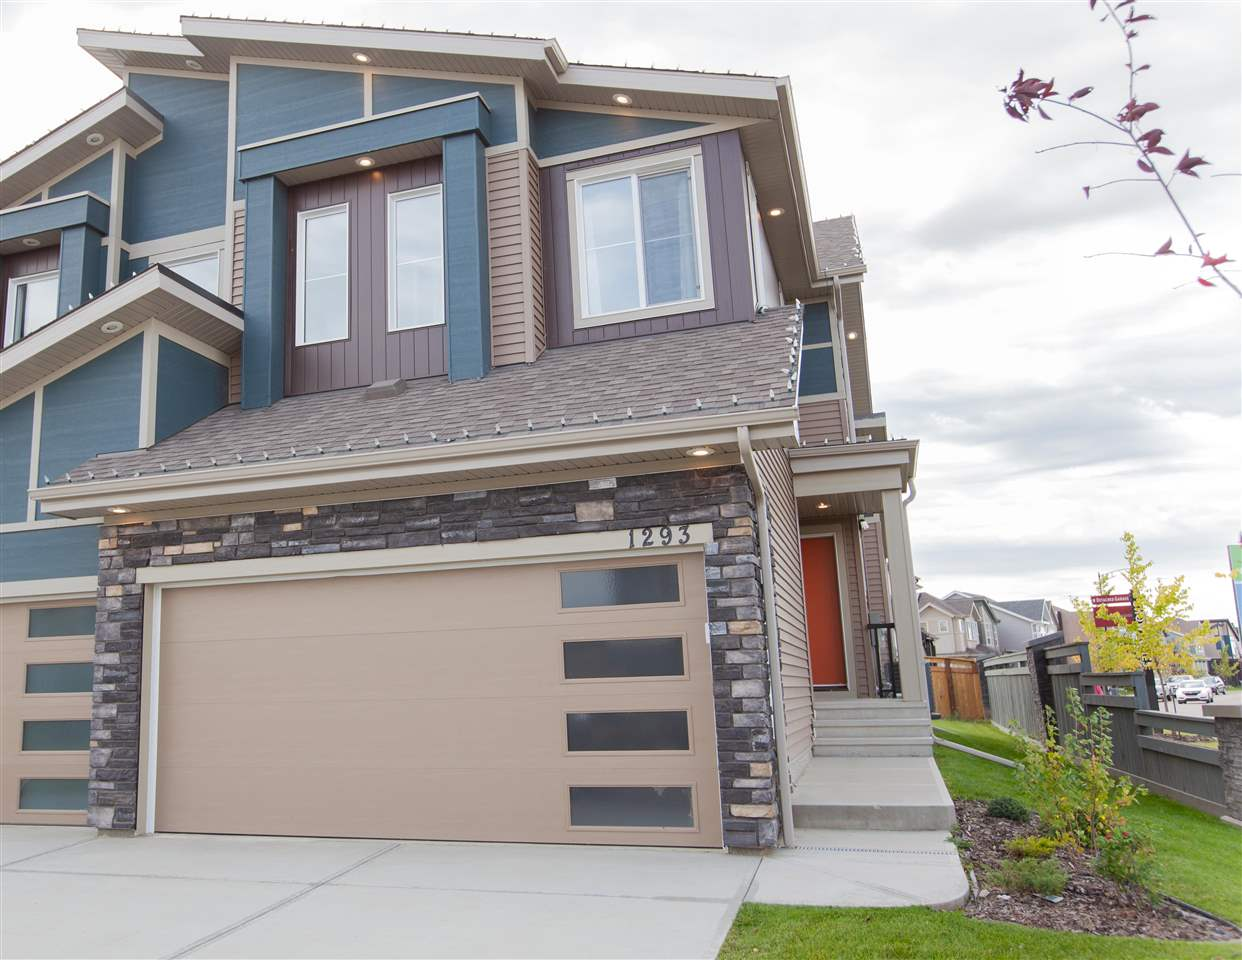 MLS® listing #E4172296 for sale located at 1293 DANIELS Crescent SW